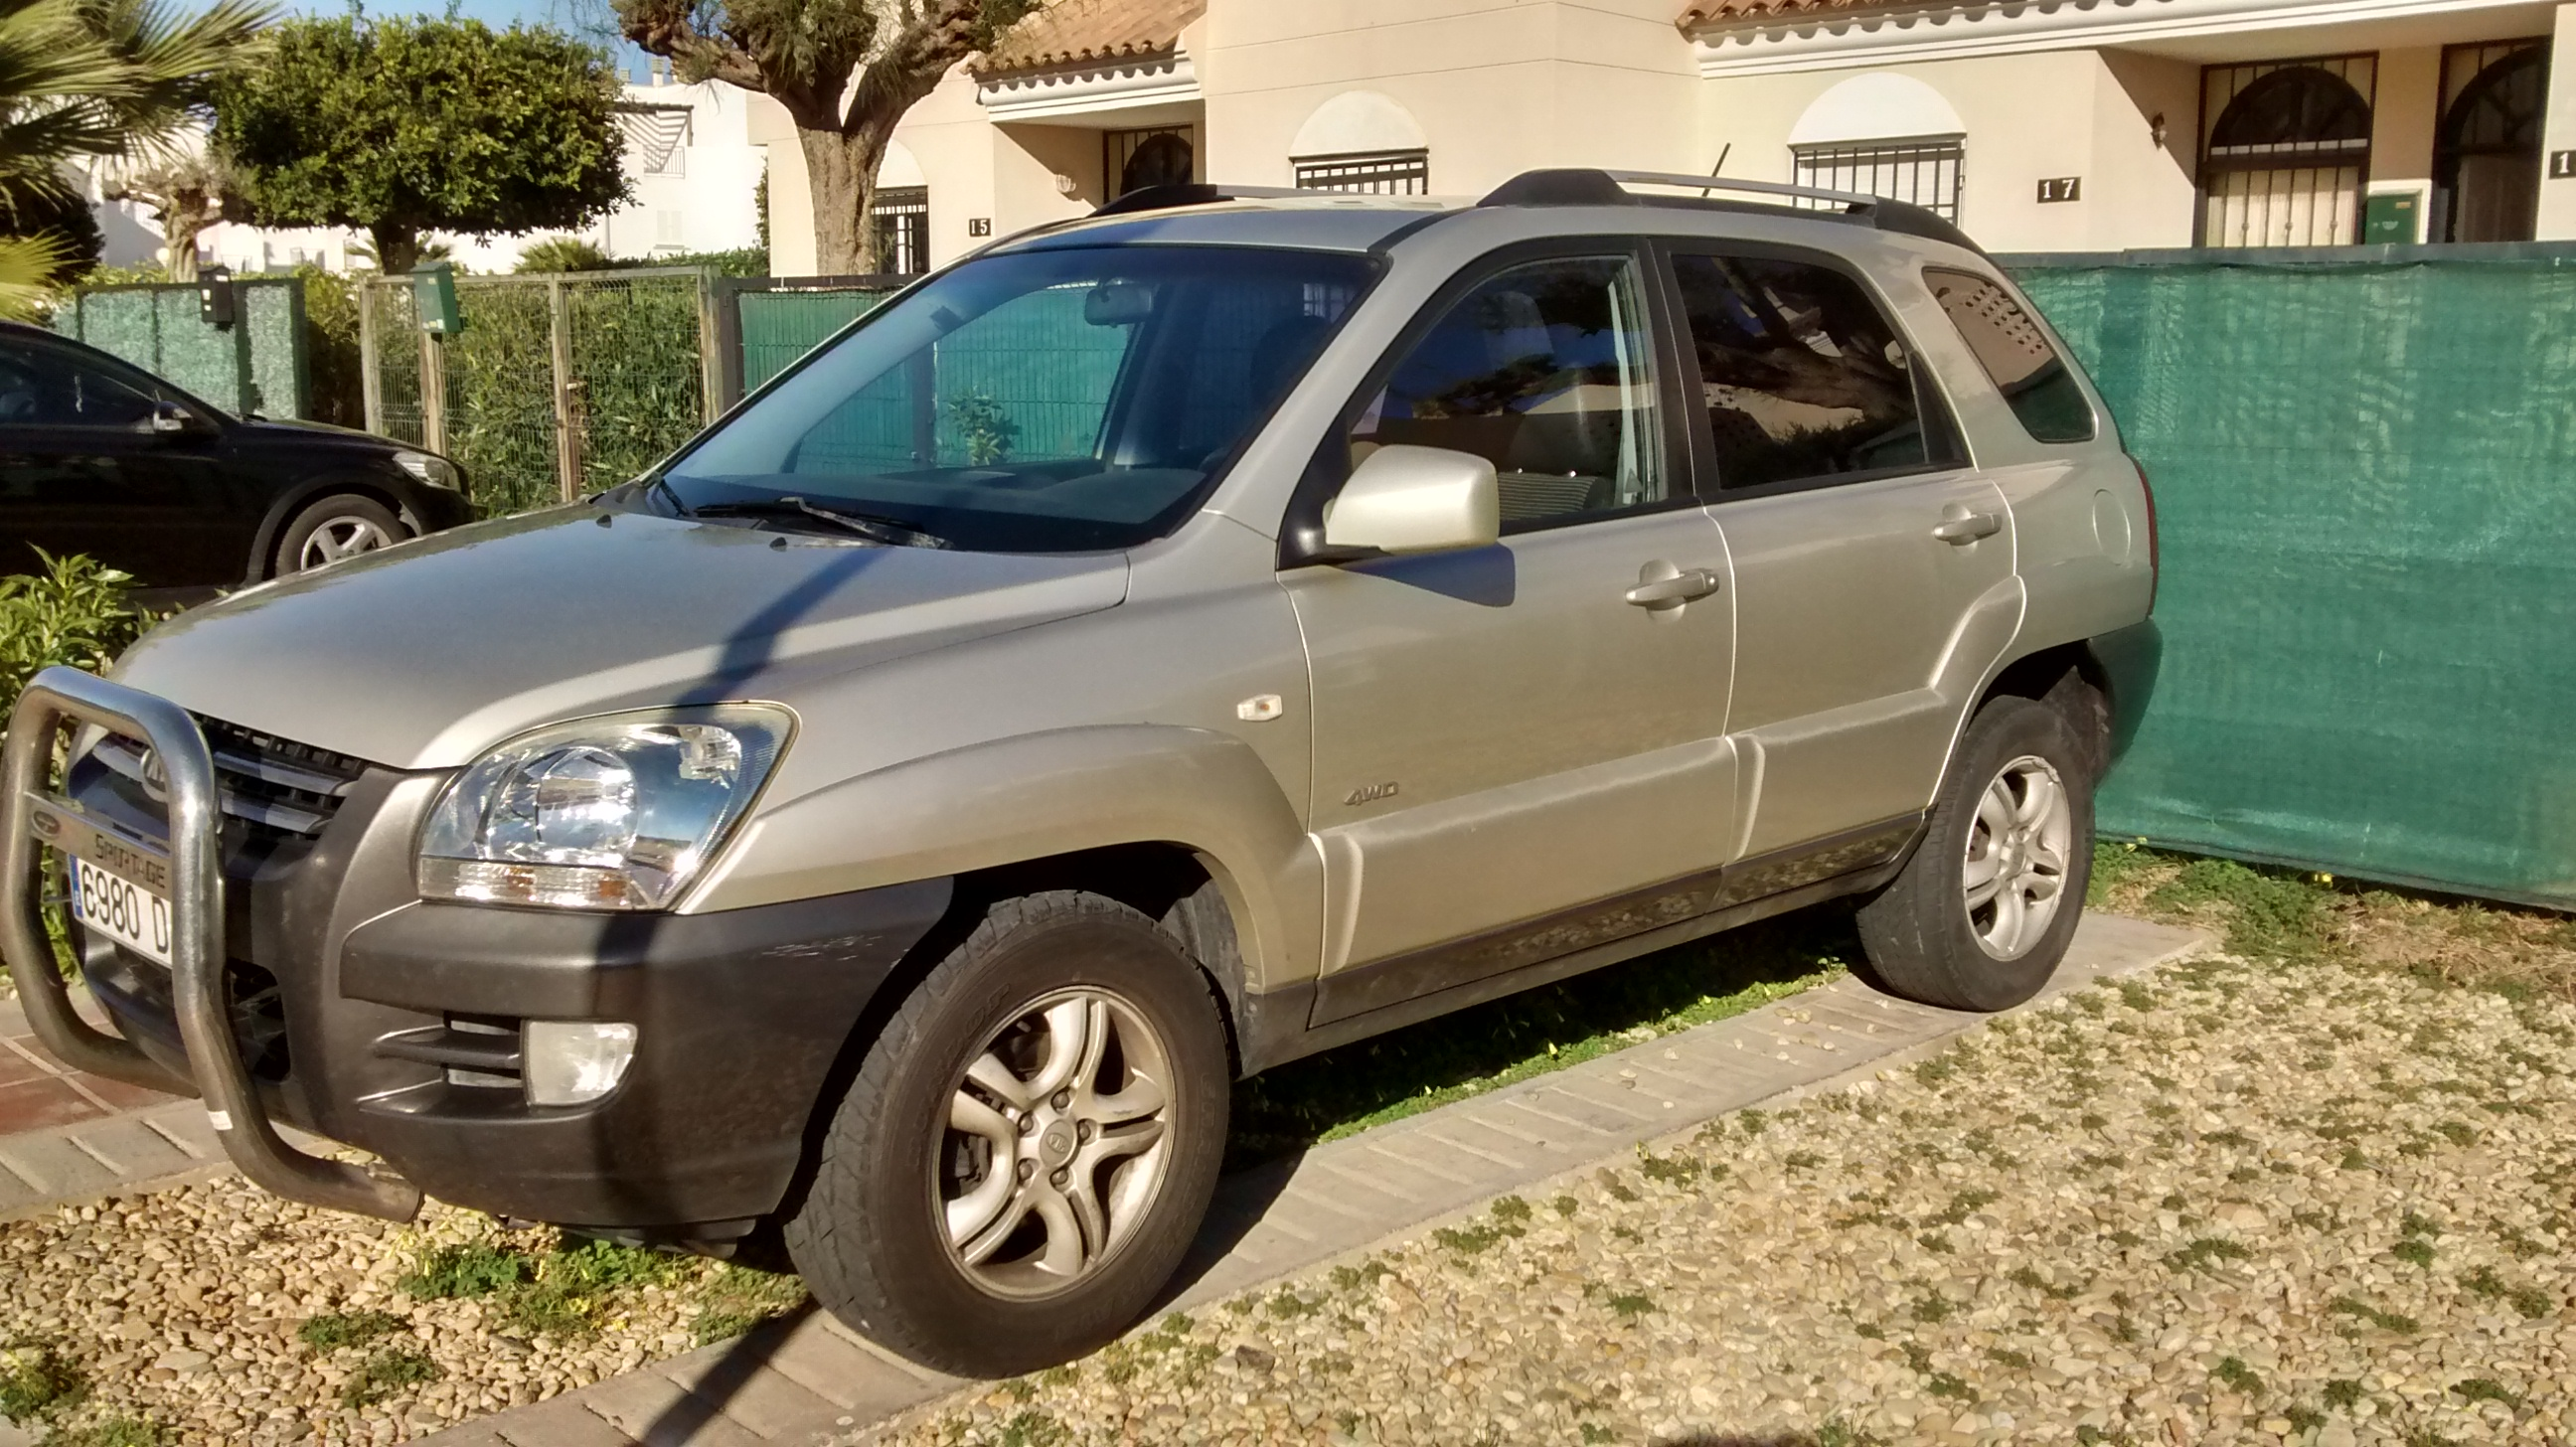 sold 4wd kia sportage buy and sell items in mojacar mojacar forum costa de almer a forum. Black Bedroom Furniture Sets. Home Design Ideas